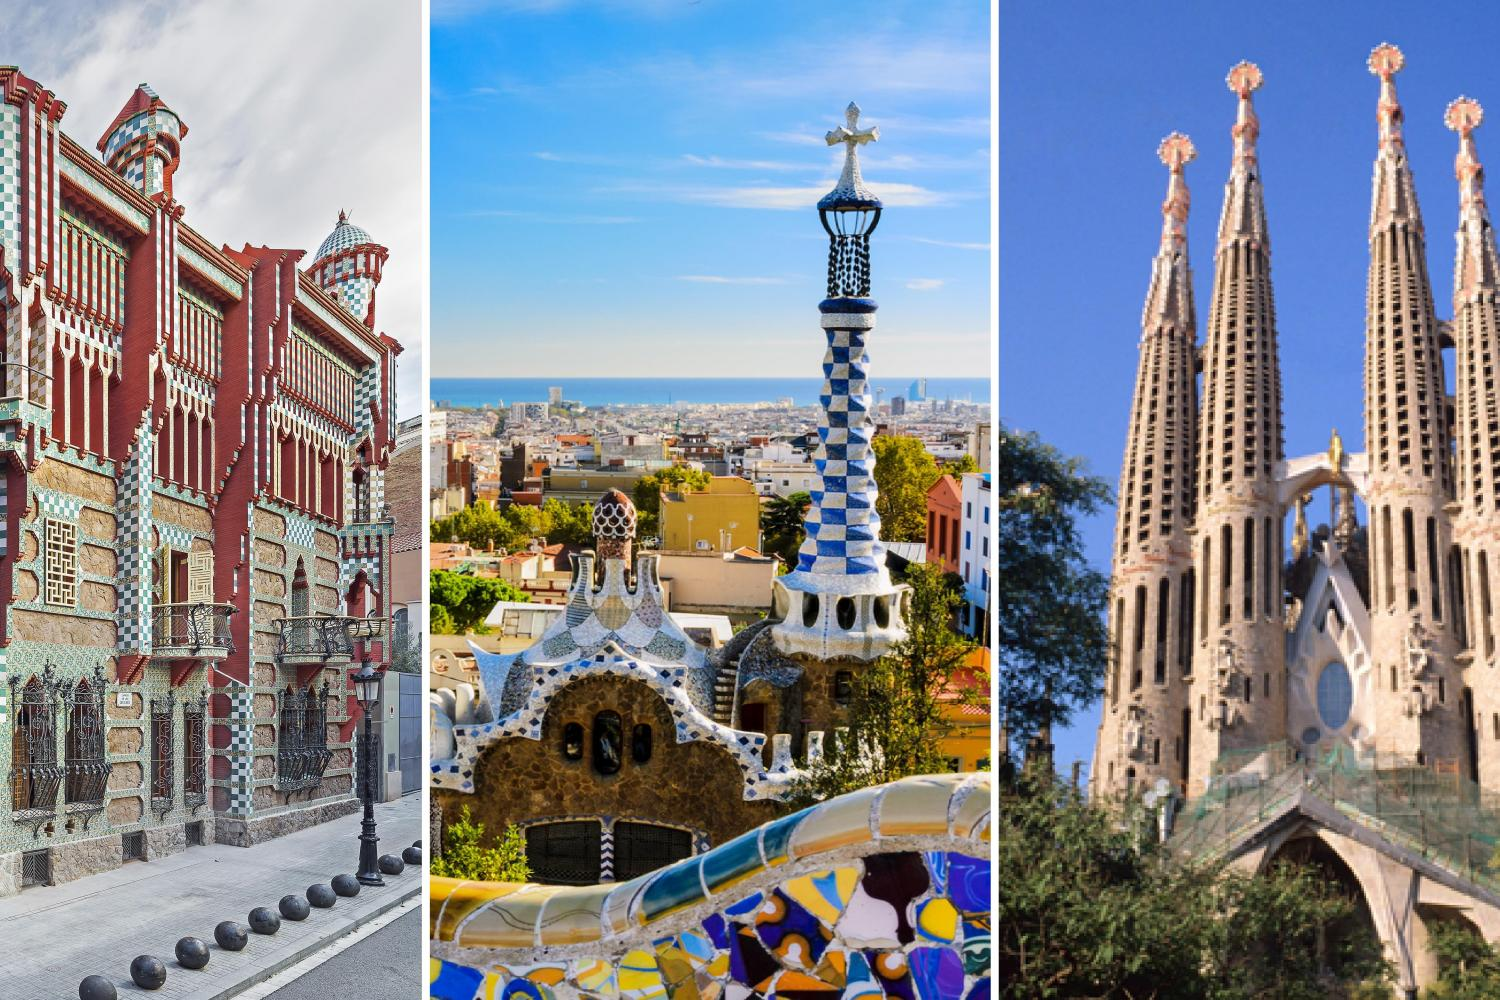 Early Access To Casa Vicens And Guided Tours To Park Guell